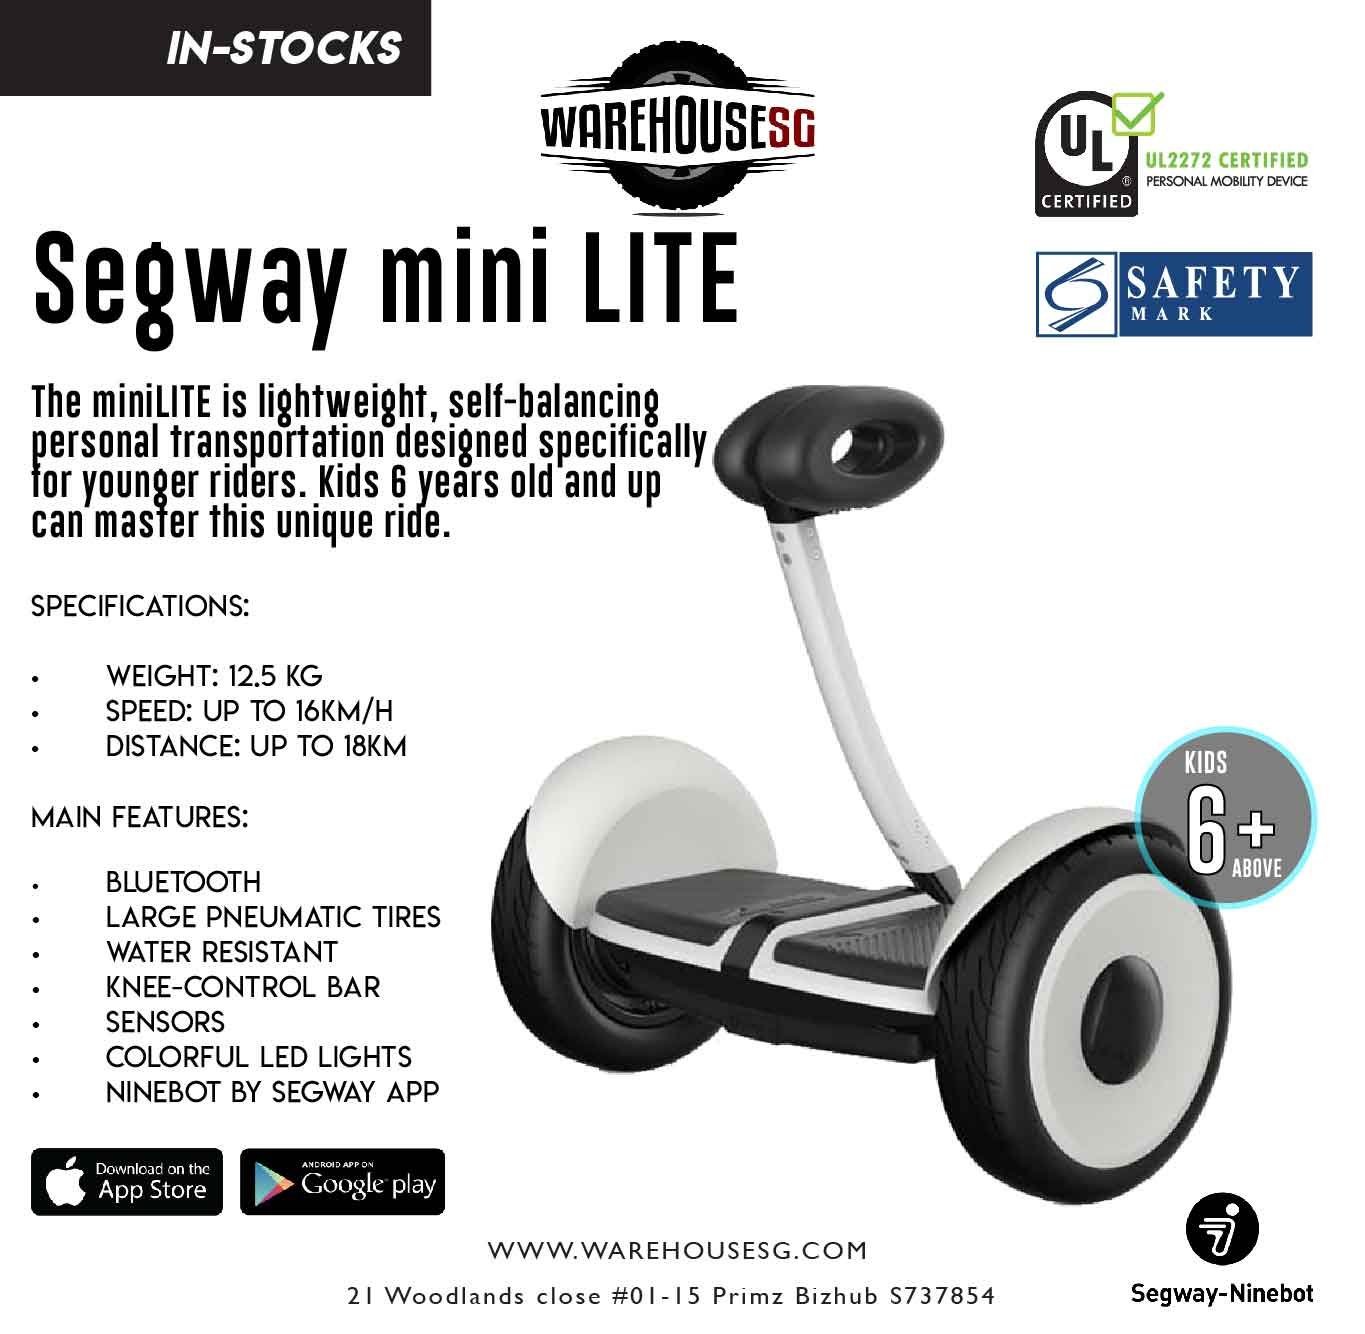 ★LOWEST PRICE GUARANTEED★ Segway MiniLite Self-Balancing Hoverboard UL2272 CERTIFIED